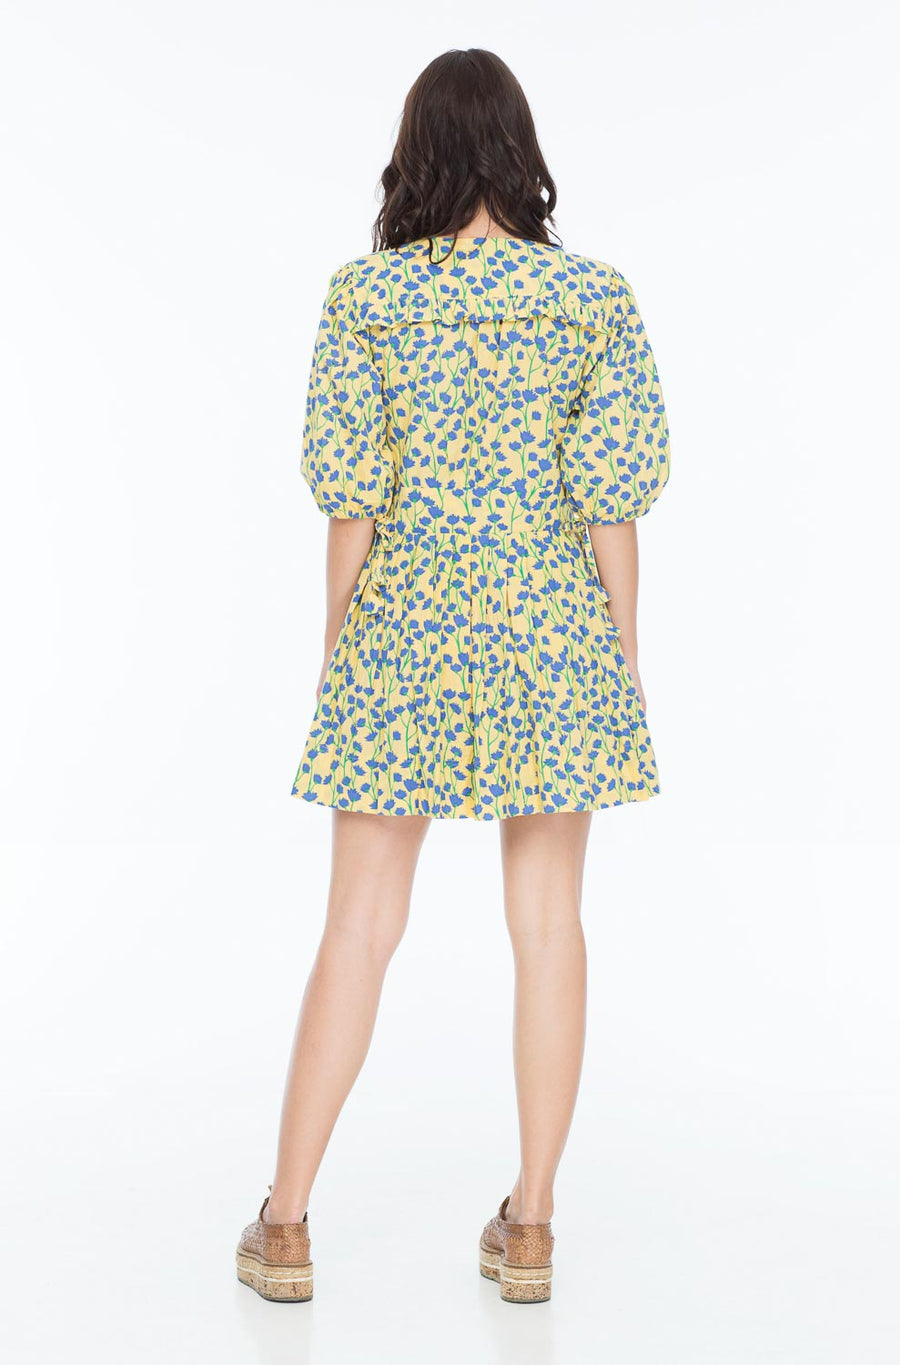 NAOMI SMITH DRESS VINE BUTTER